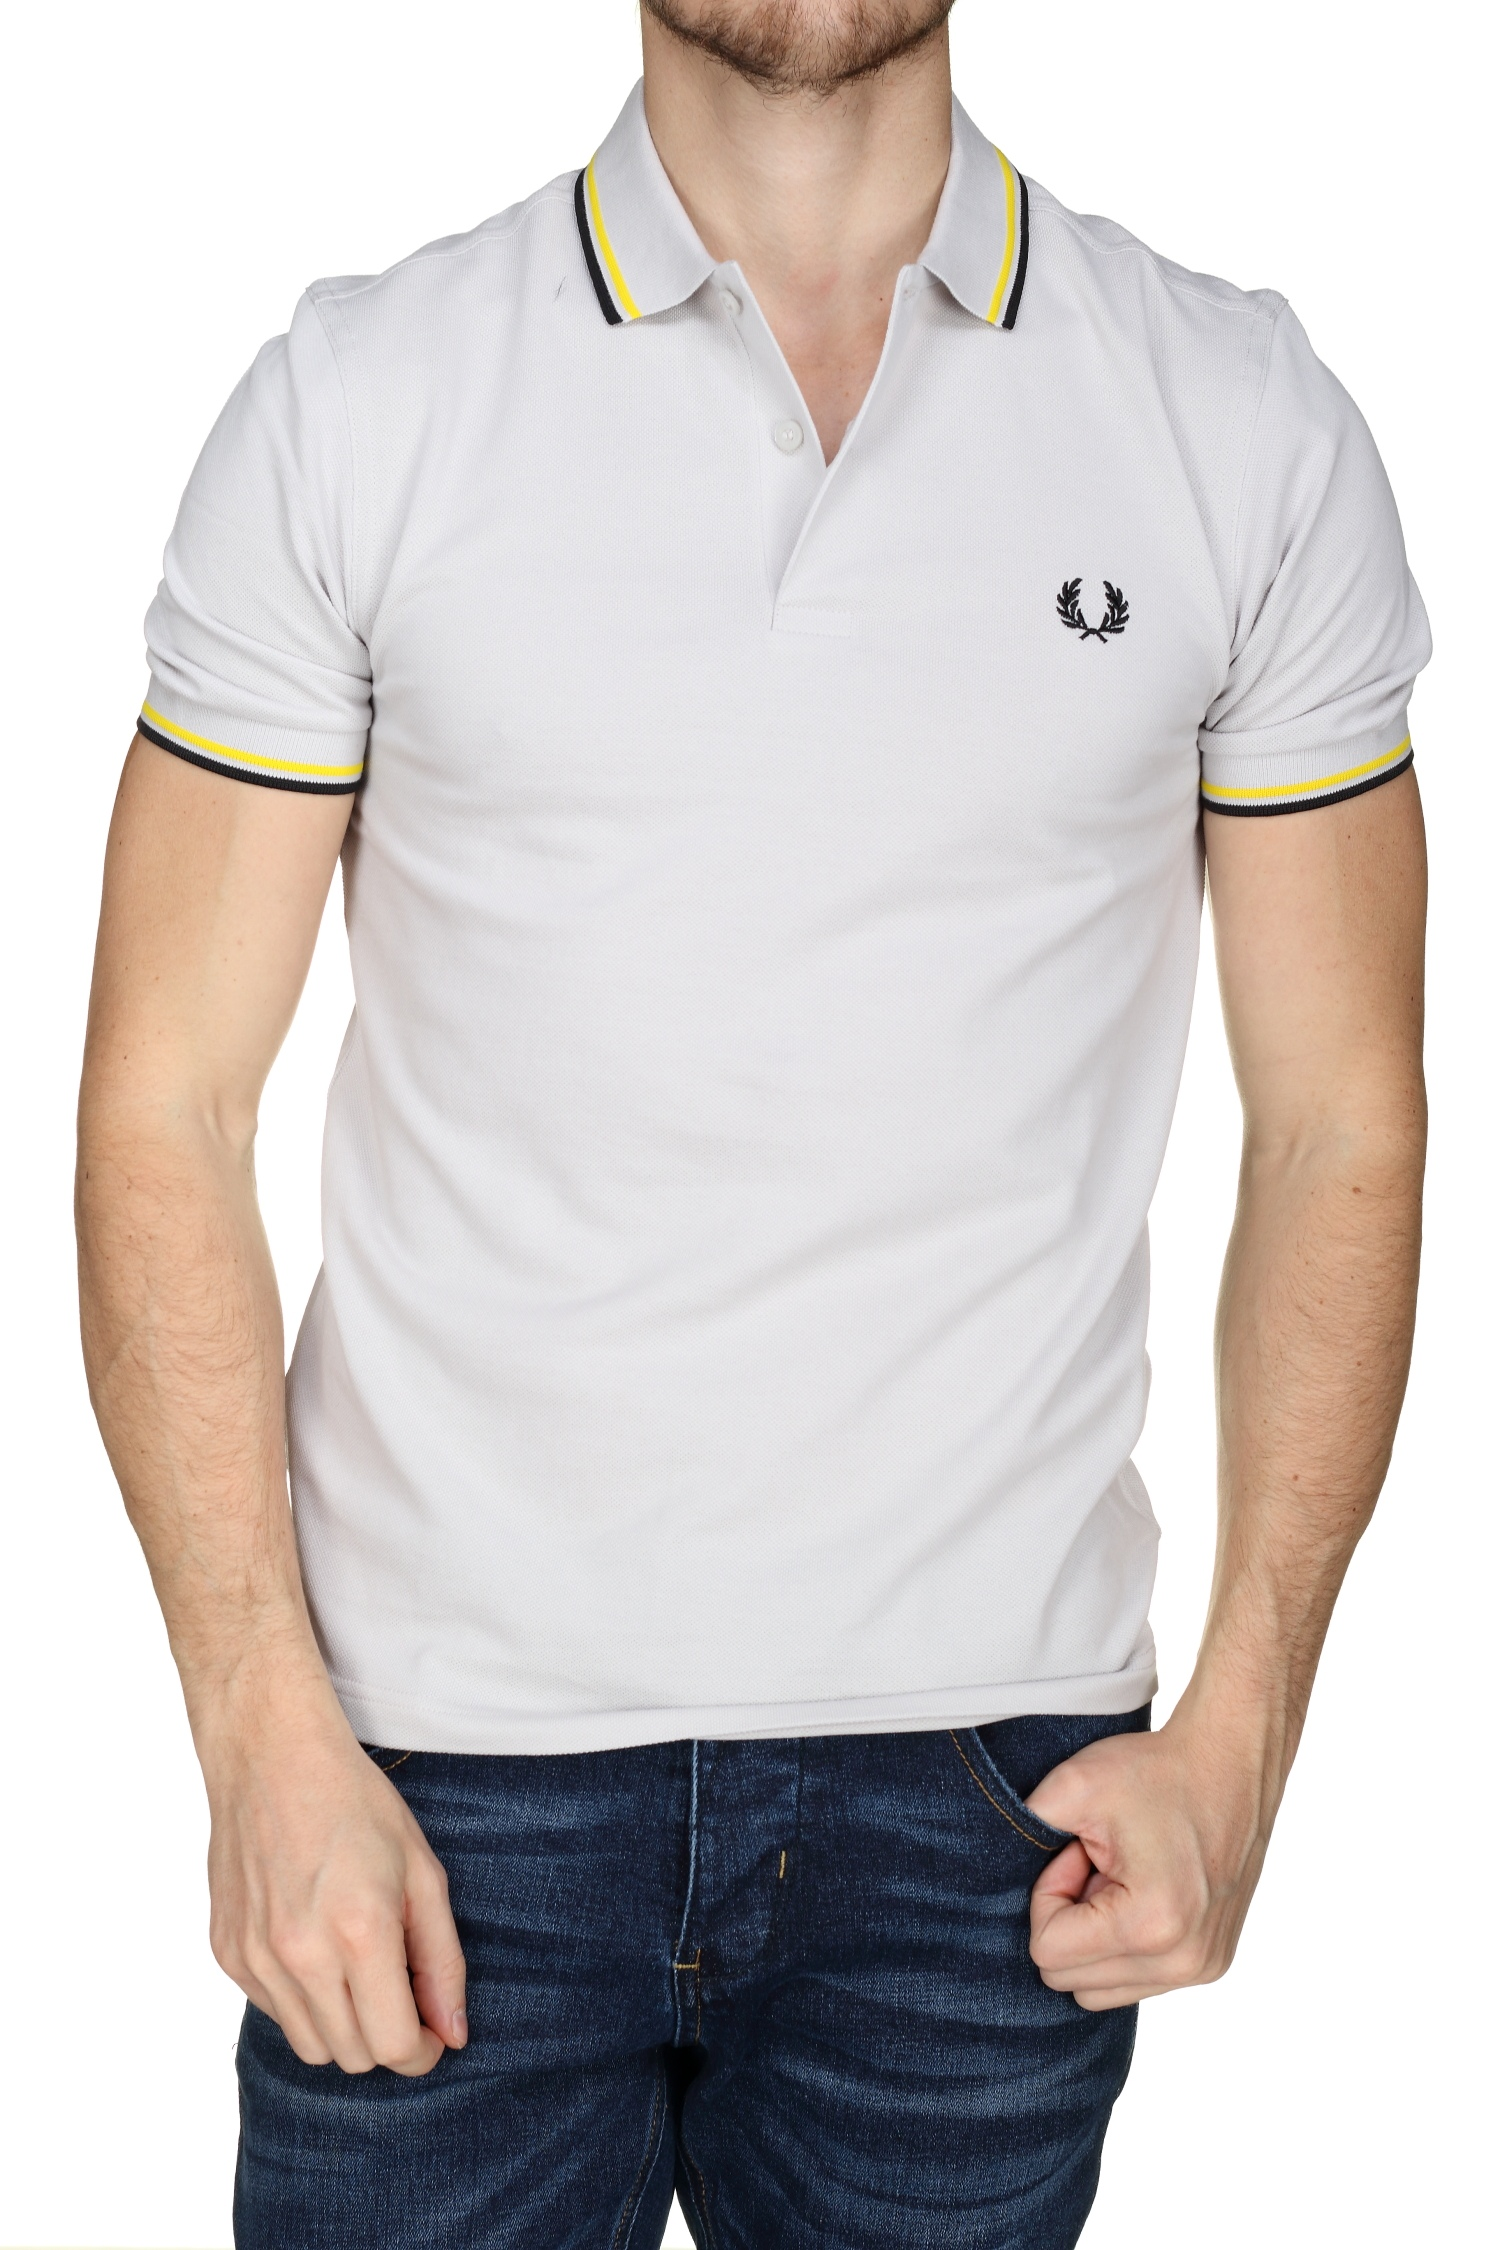 https://www.leadermode.com/182452/fred-perry-fpmm3600-b50-pearl.jpg